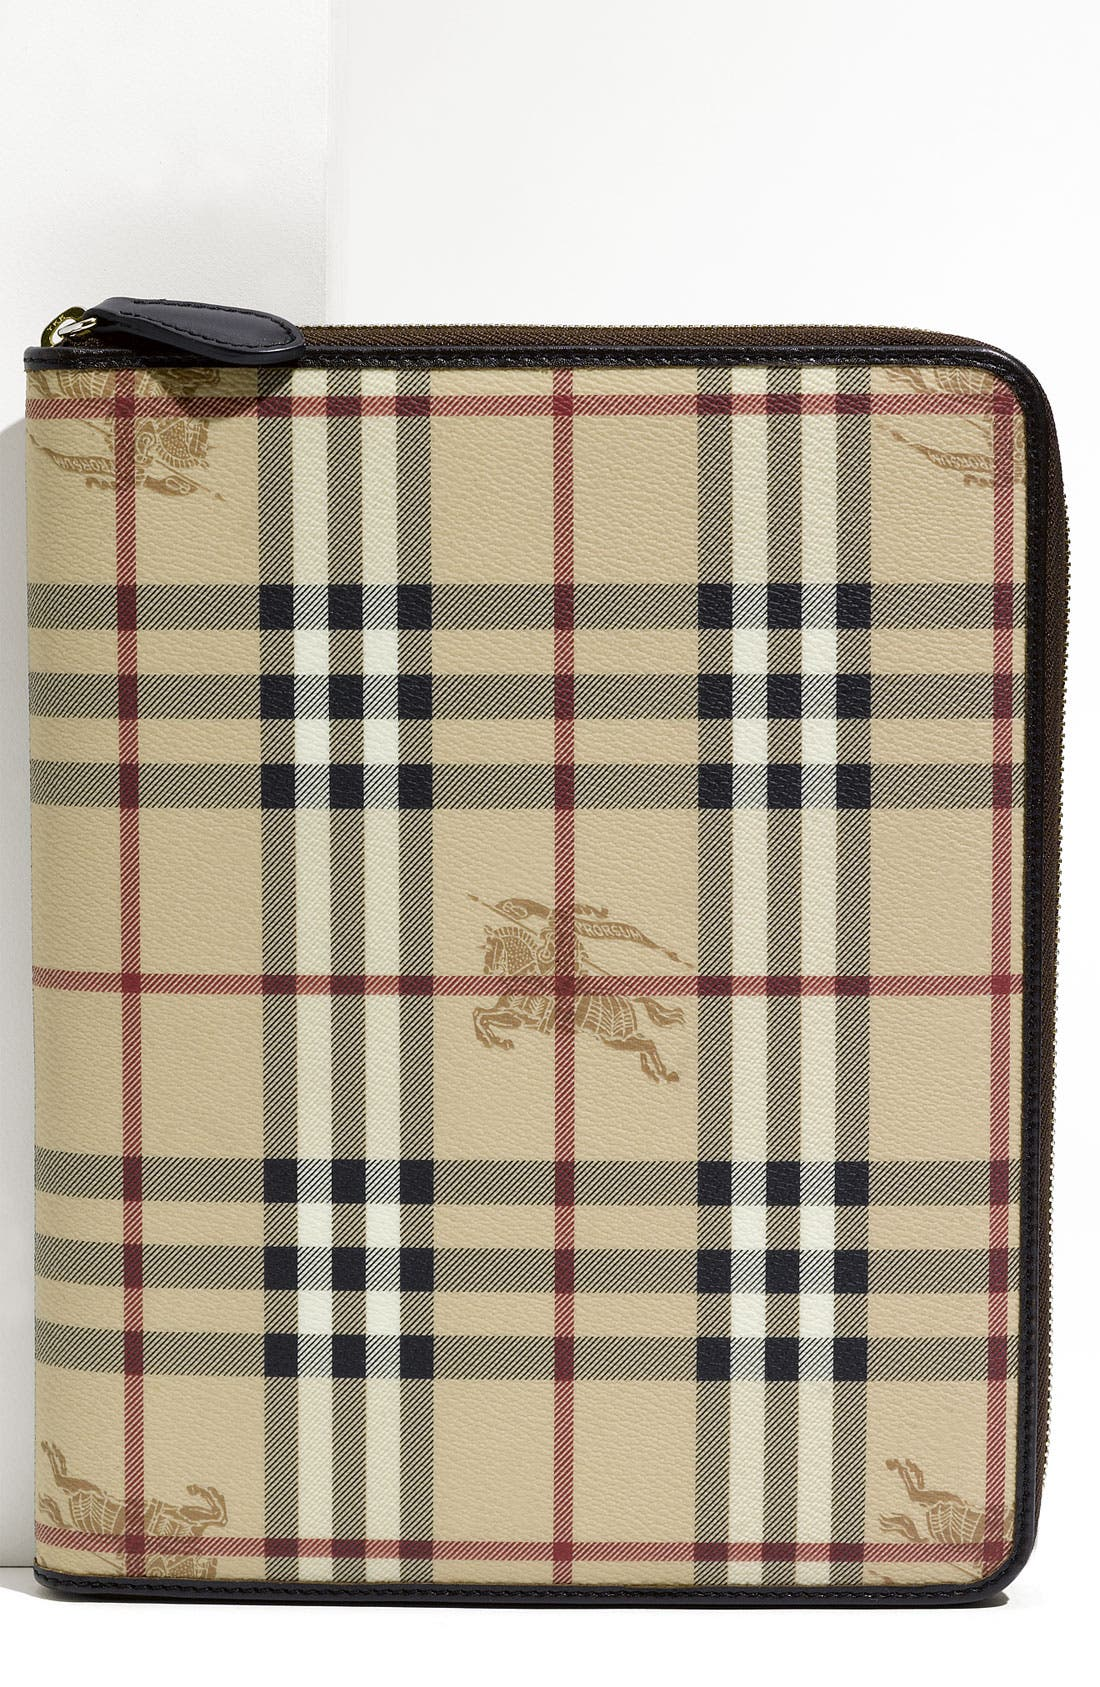 Alternate Image 1 Selected - Burberry 'Haymarket Check' Zip Around iPad 2 Case